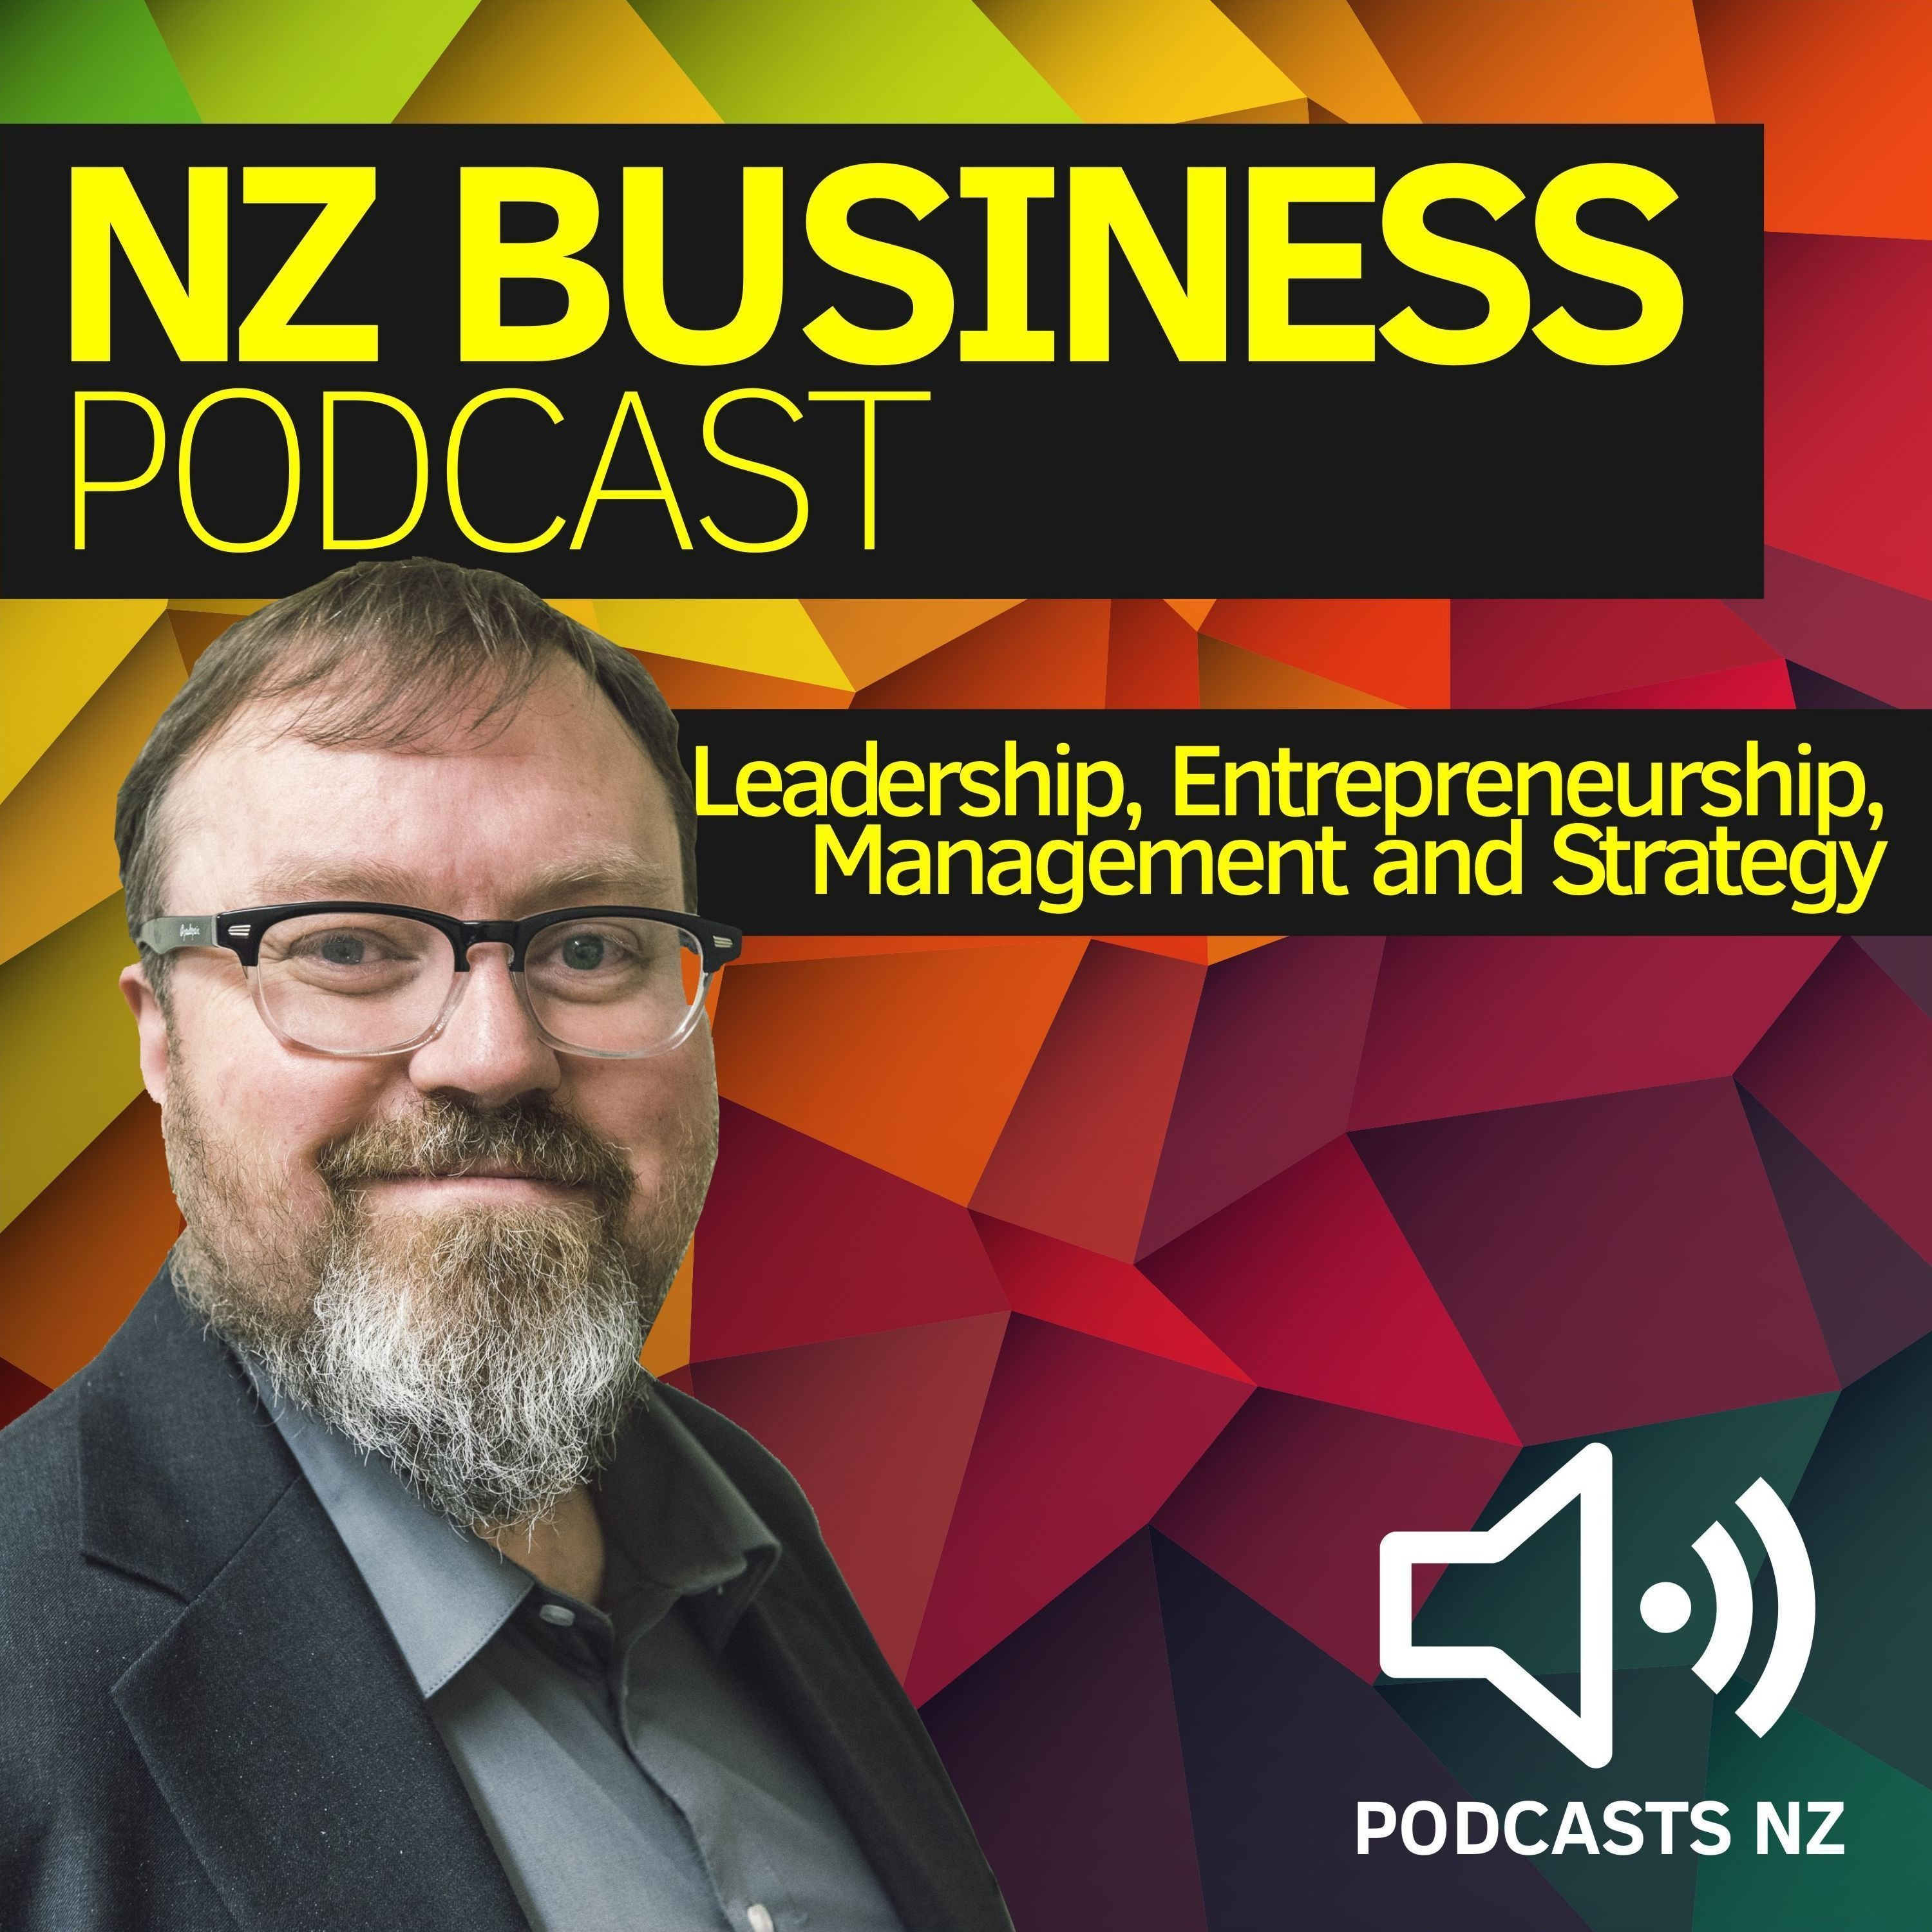 NZ Business Podcast - Paul Spain